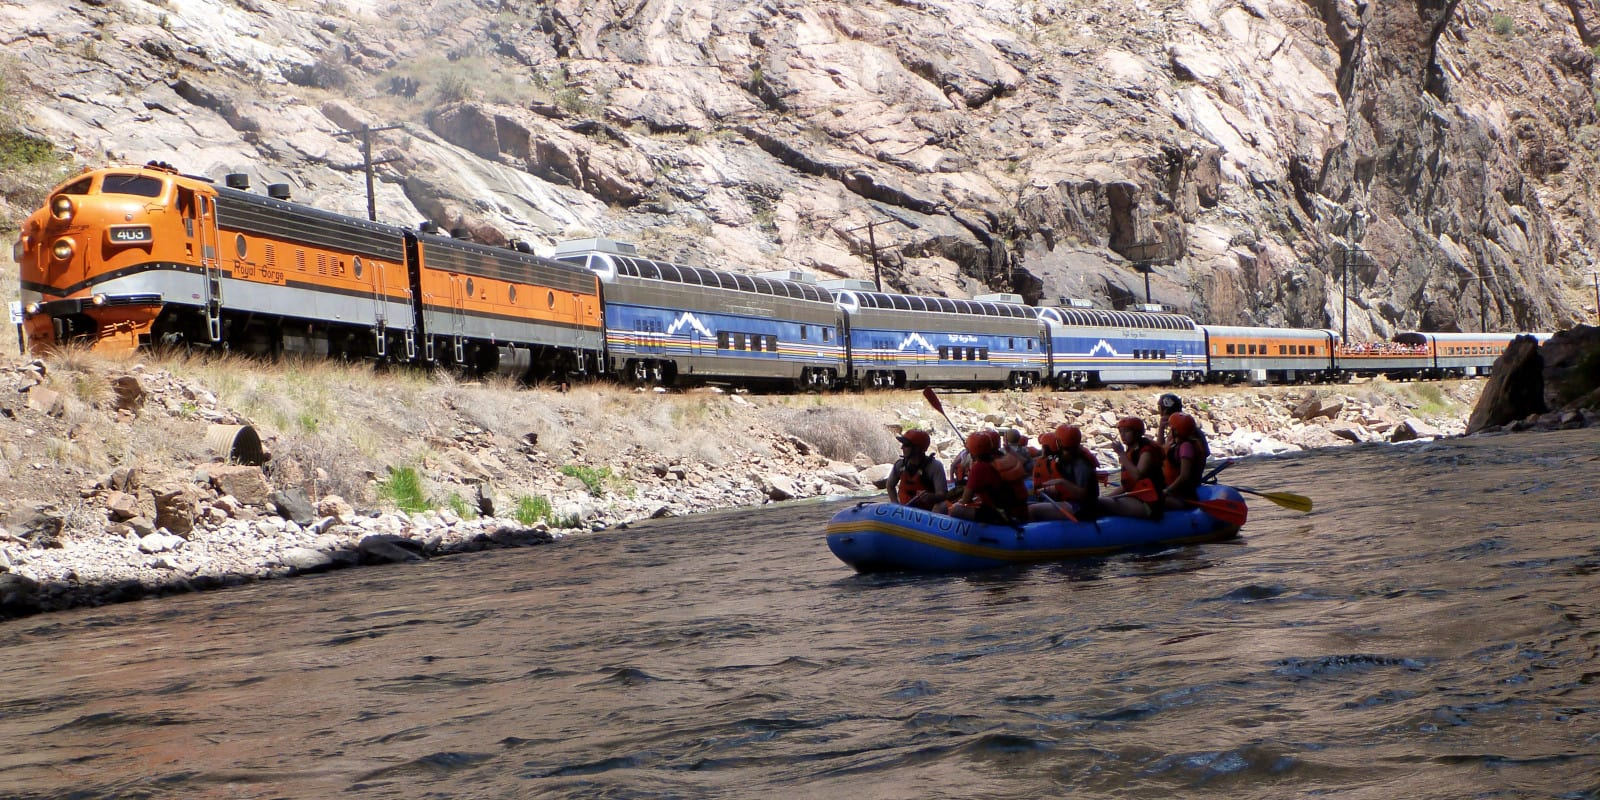 Arkansas River Whitewater Rafting through the Royal Gorge by Train